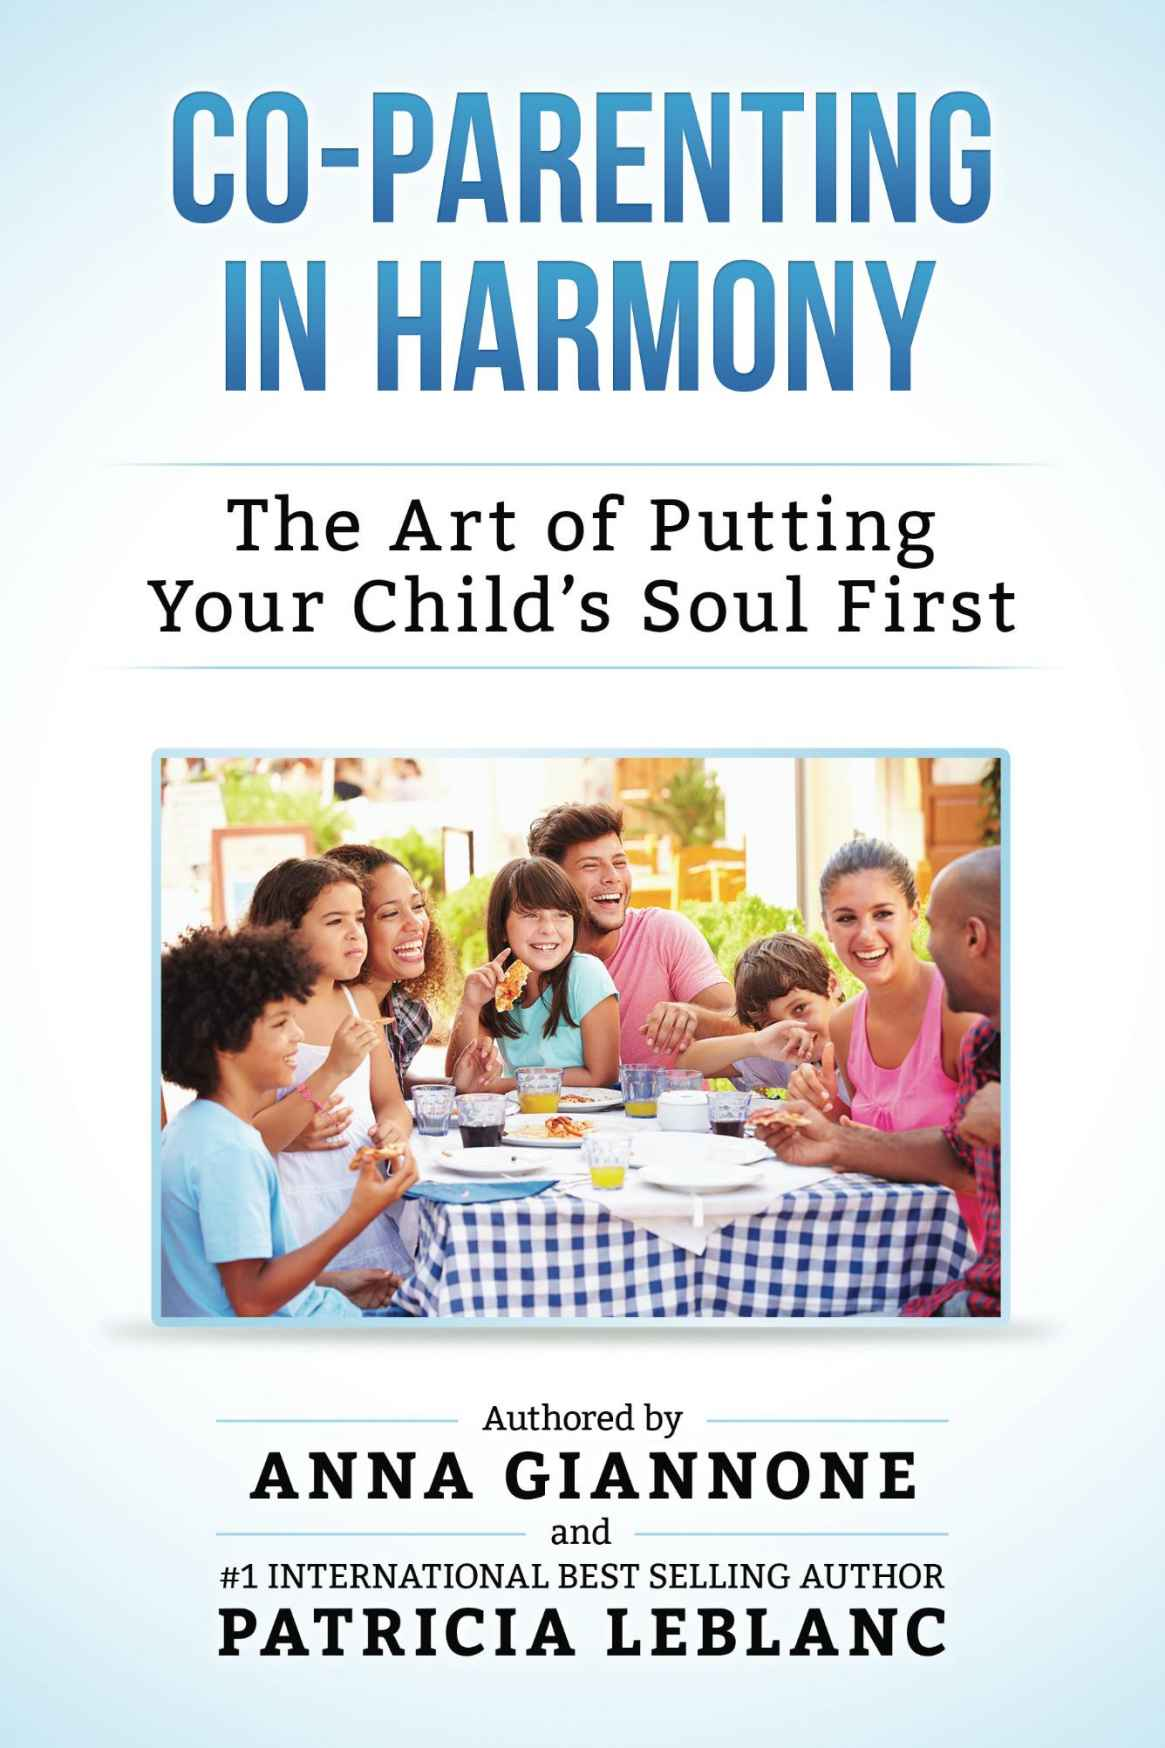 Anna Giannone - Coparenting in Harmony